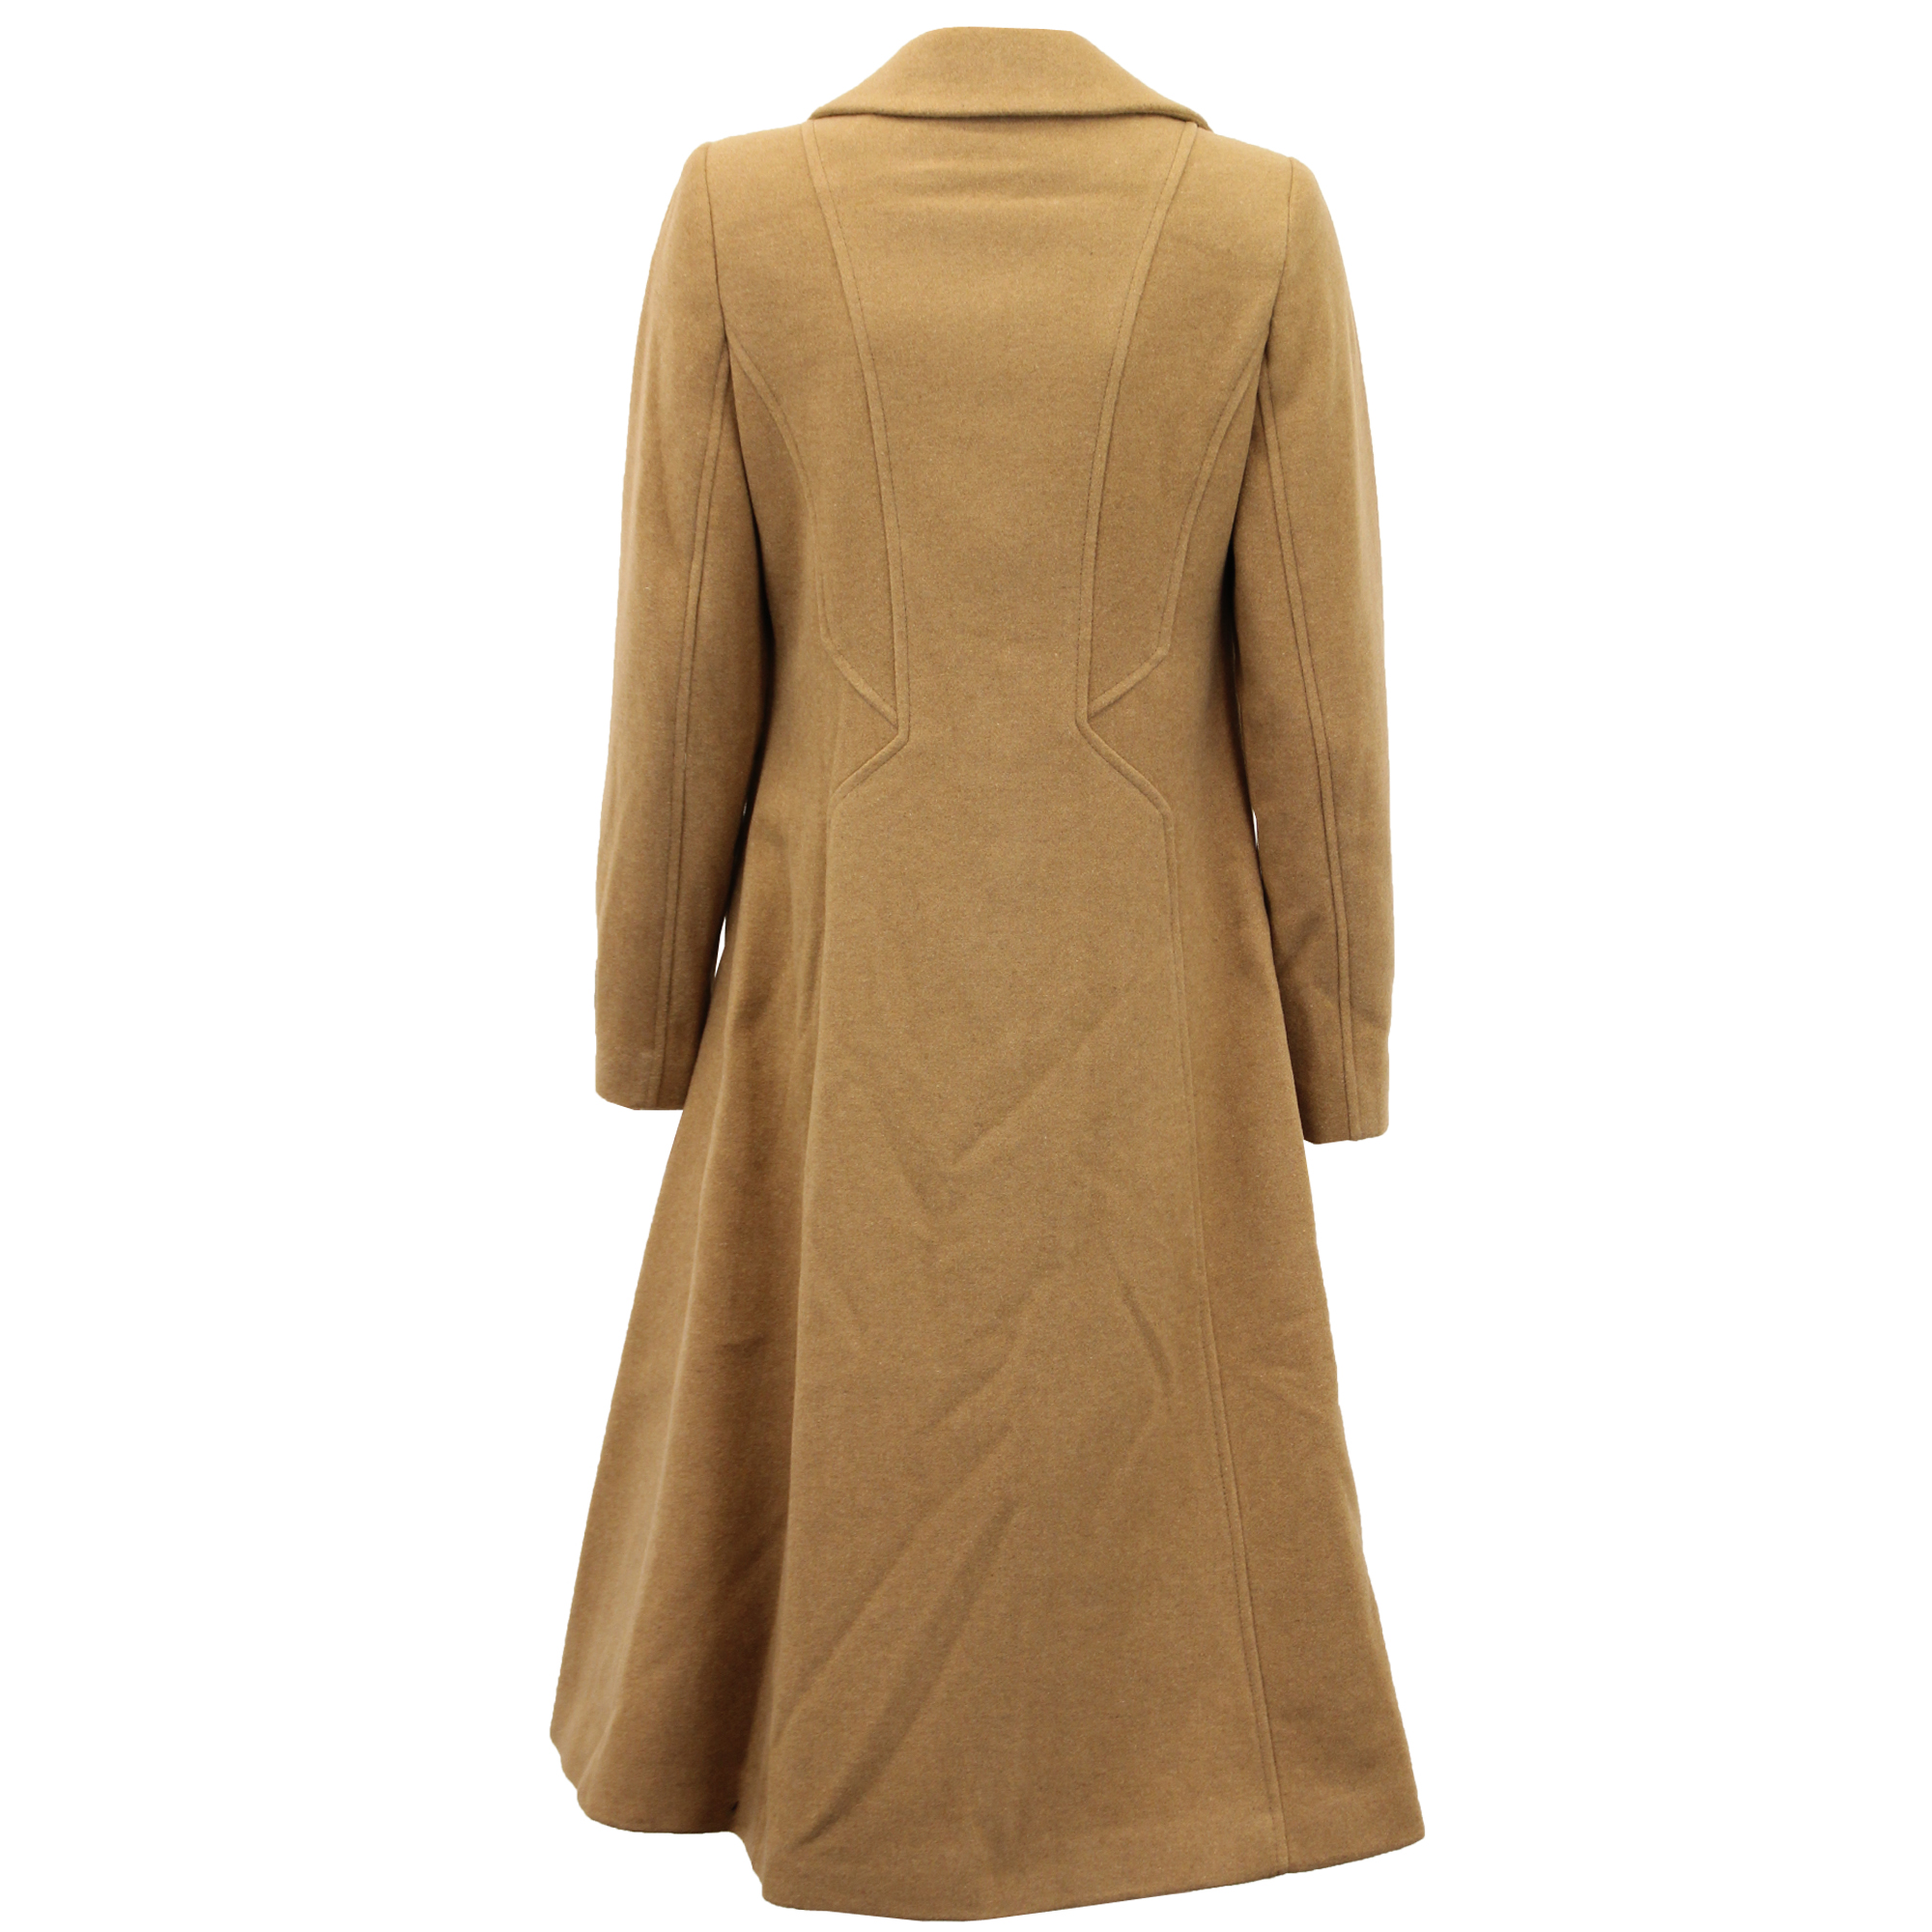 Ladies-Wool-Cashmere-Coat-Womens-Jacket-Long-Fashion-Warm-Casual-Winter-New thumbnail 6